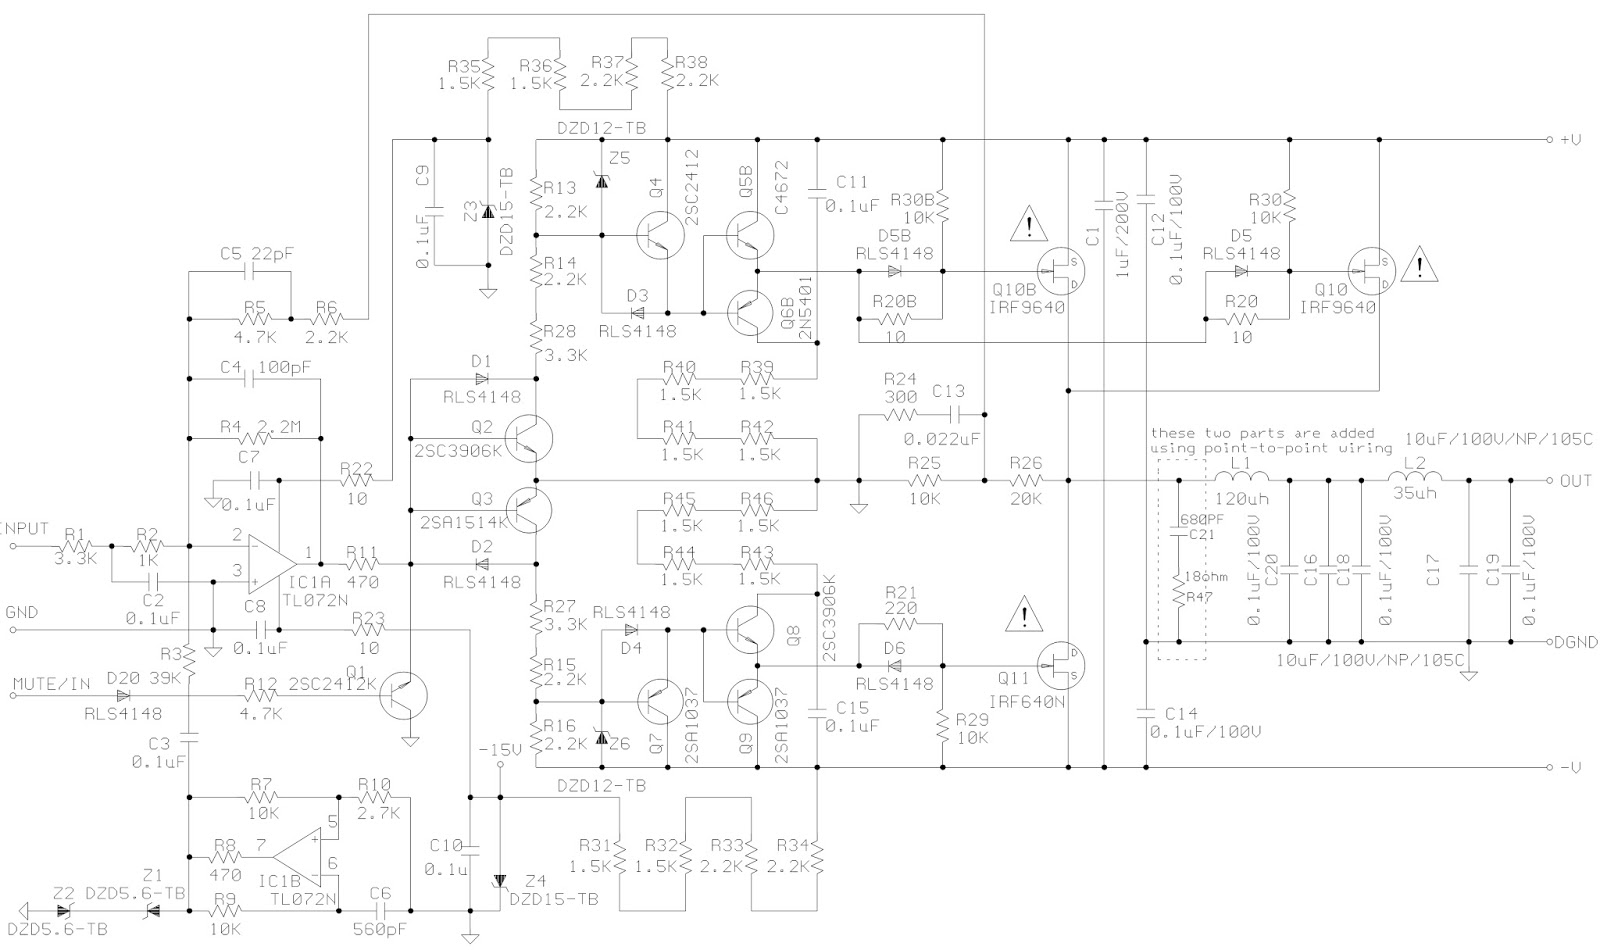 jbl sub150 - jbl sub230 - active sub-woofer - schematic  circuit diagram